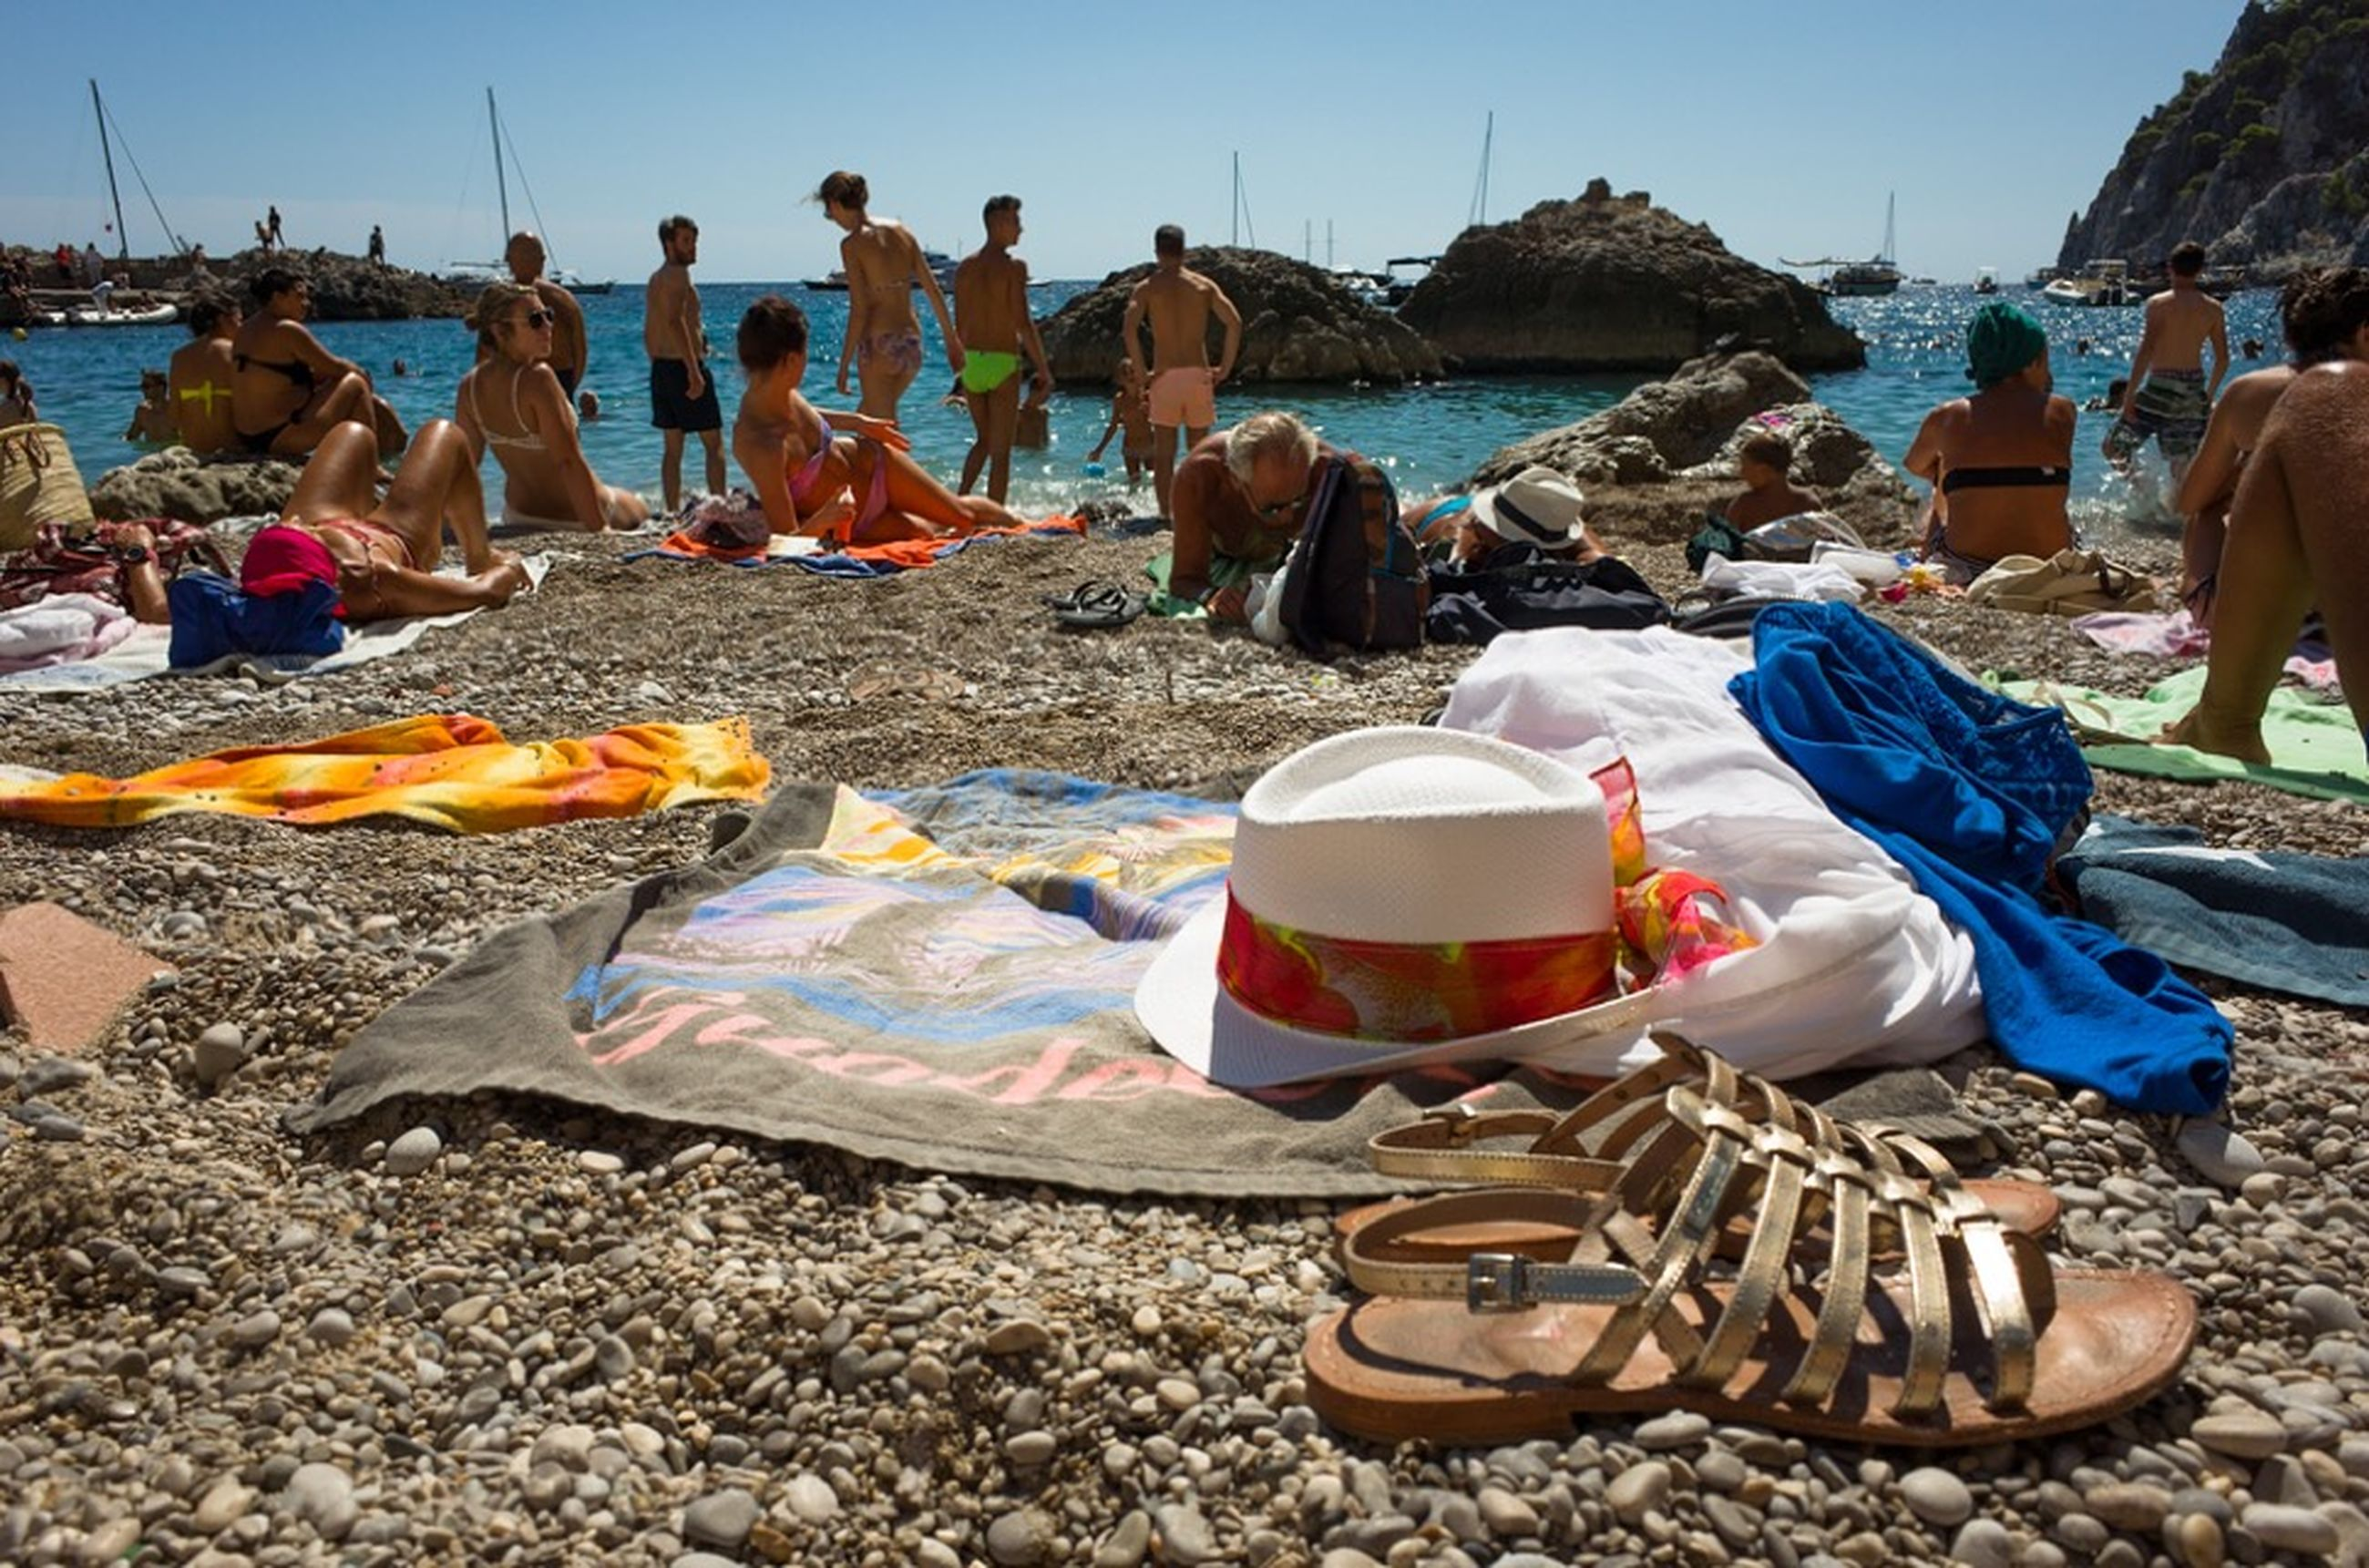 beach, sea, water, shore, sand, nautical vessel, moored, vacations, large group of people, sunlight, boat, beach umbrella, incidental people, transportation, tranquility, day, relaxation, nature, clear sky